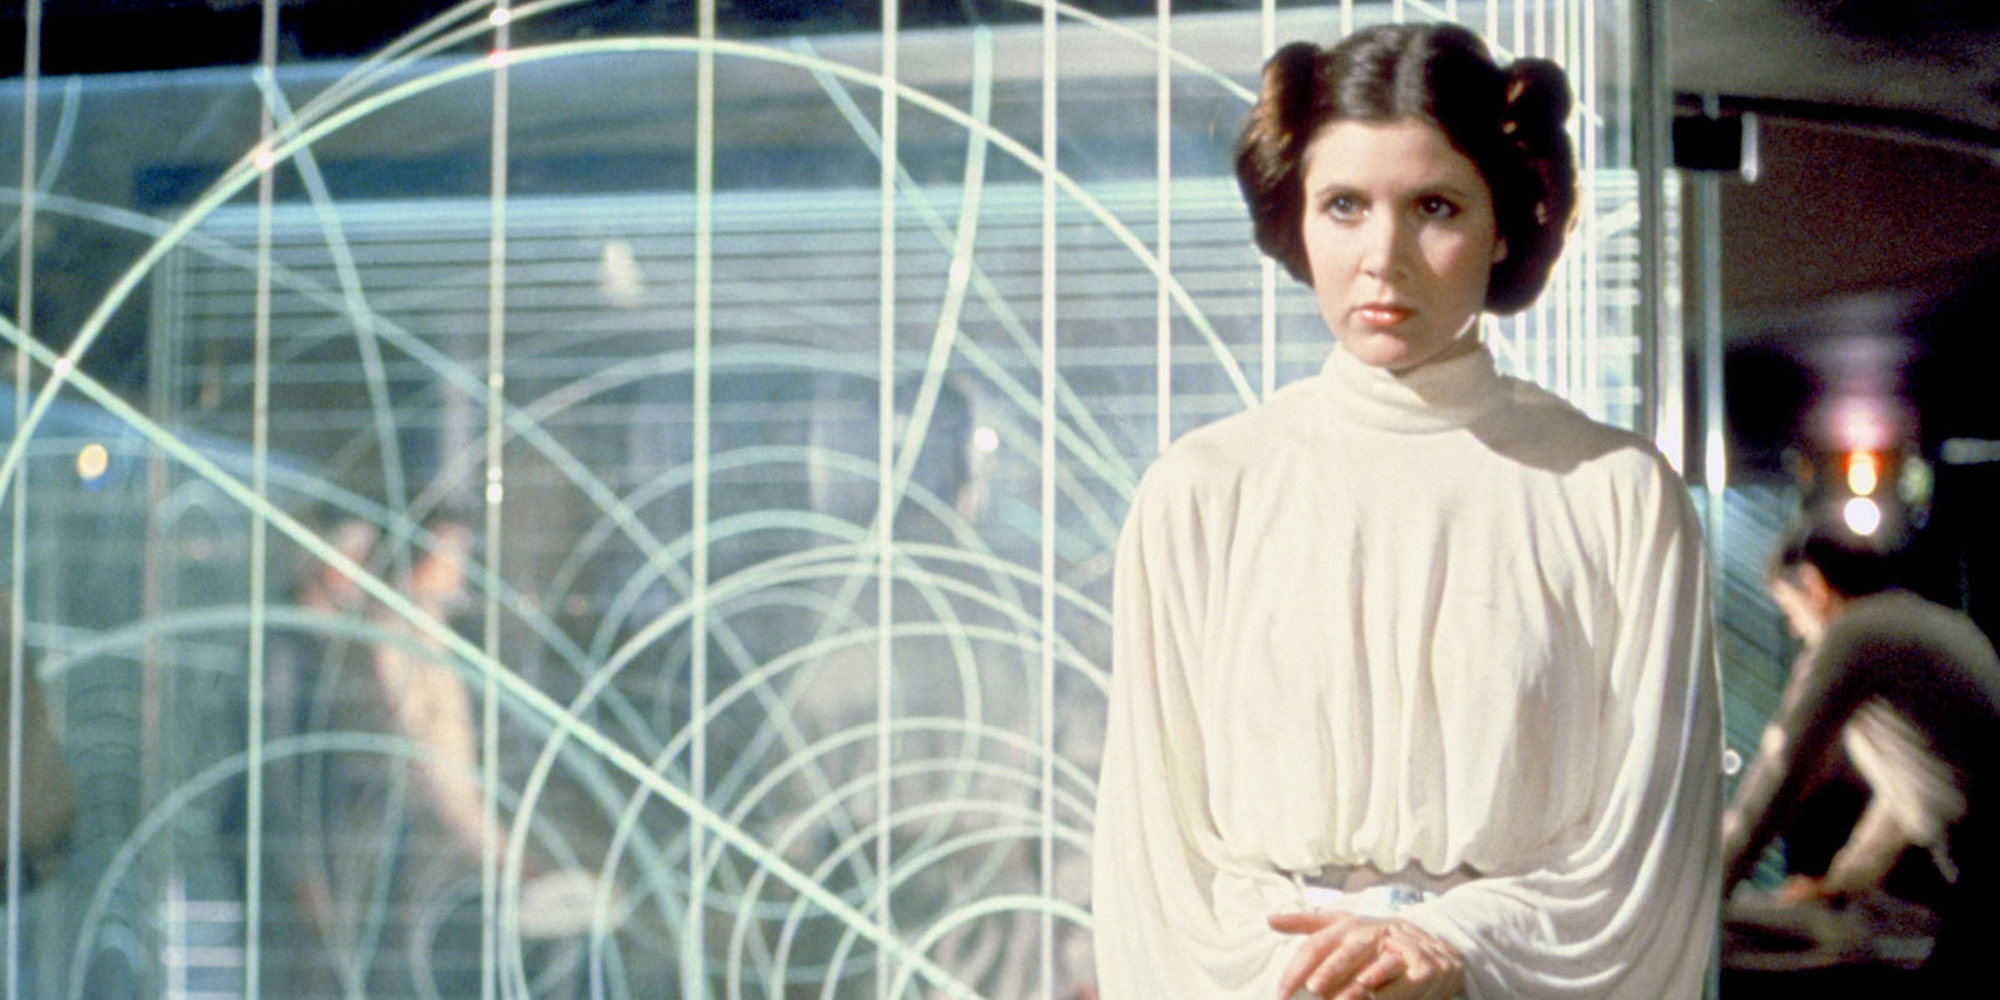 Princess Leia facts